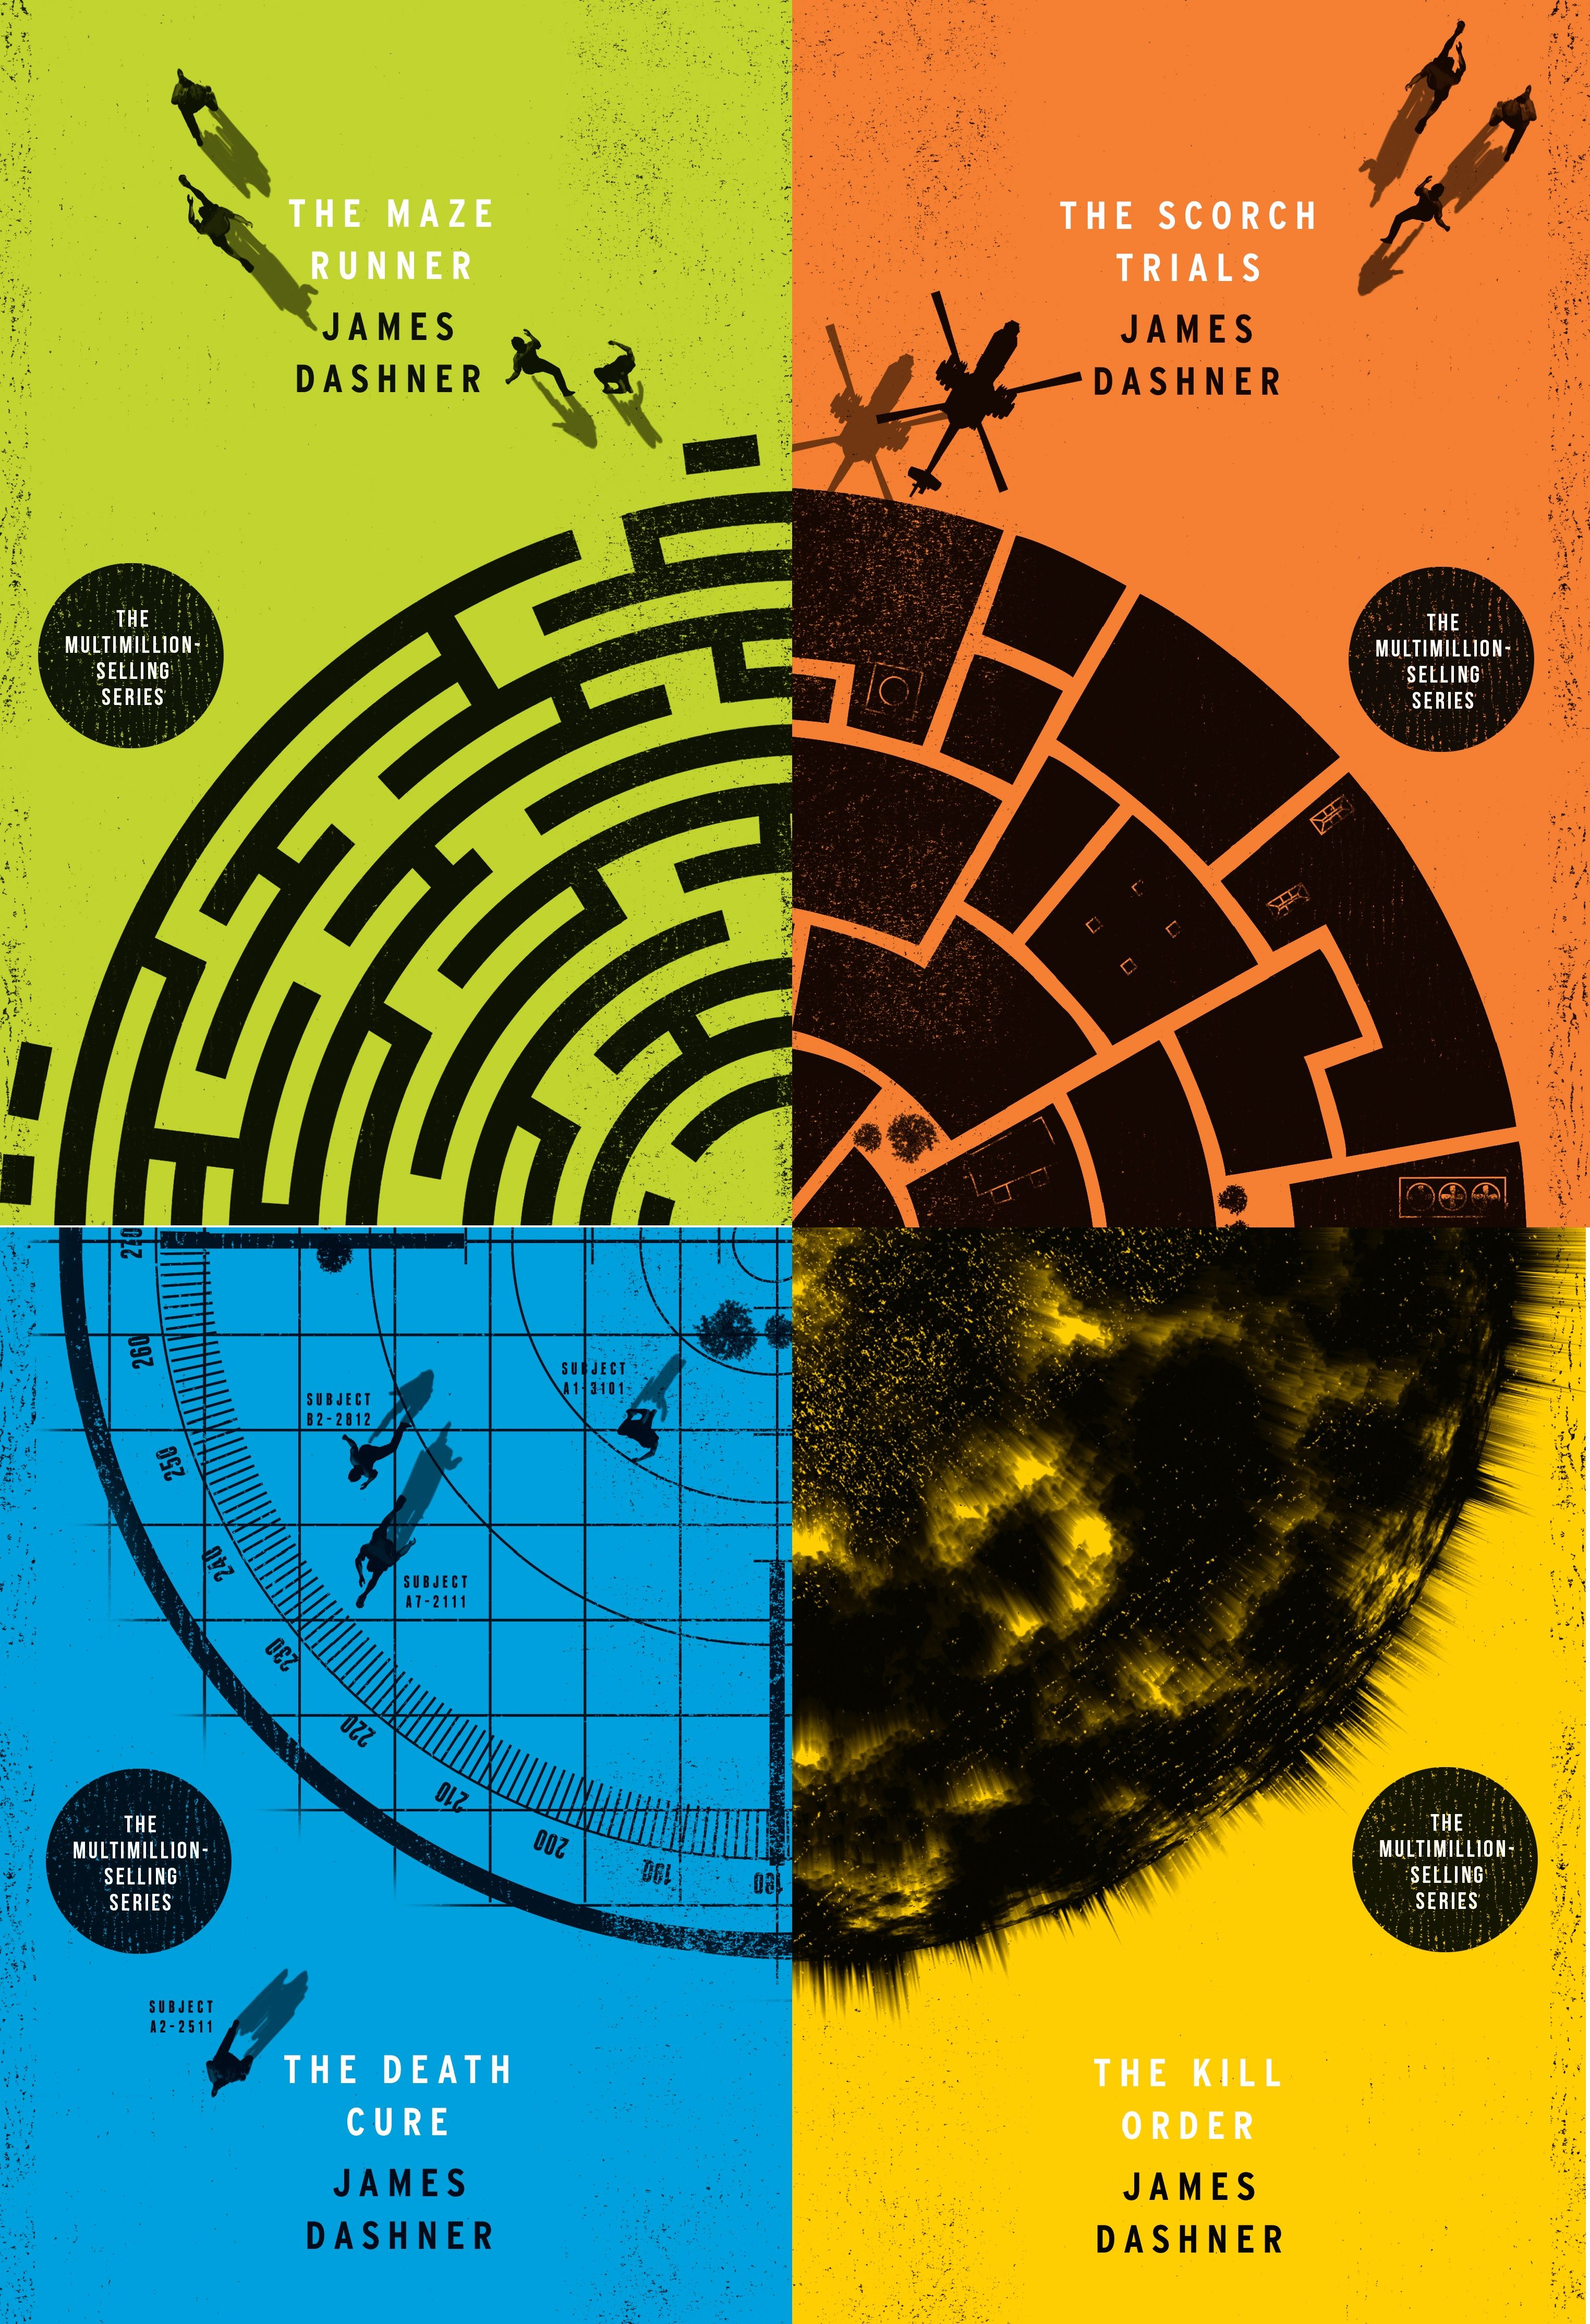 Book Cover Art Search : Cool art the maze runner book covers